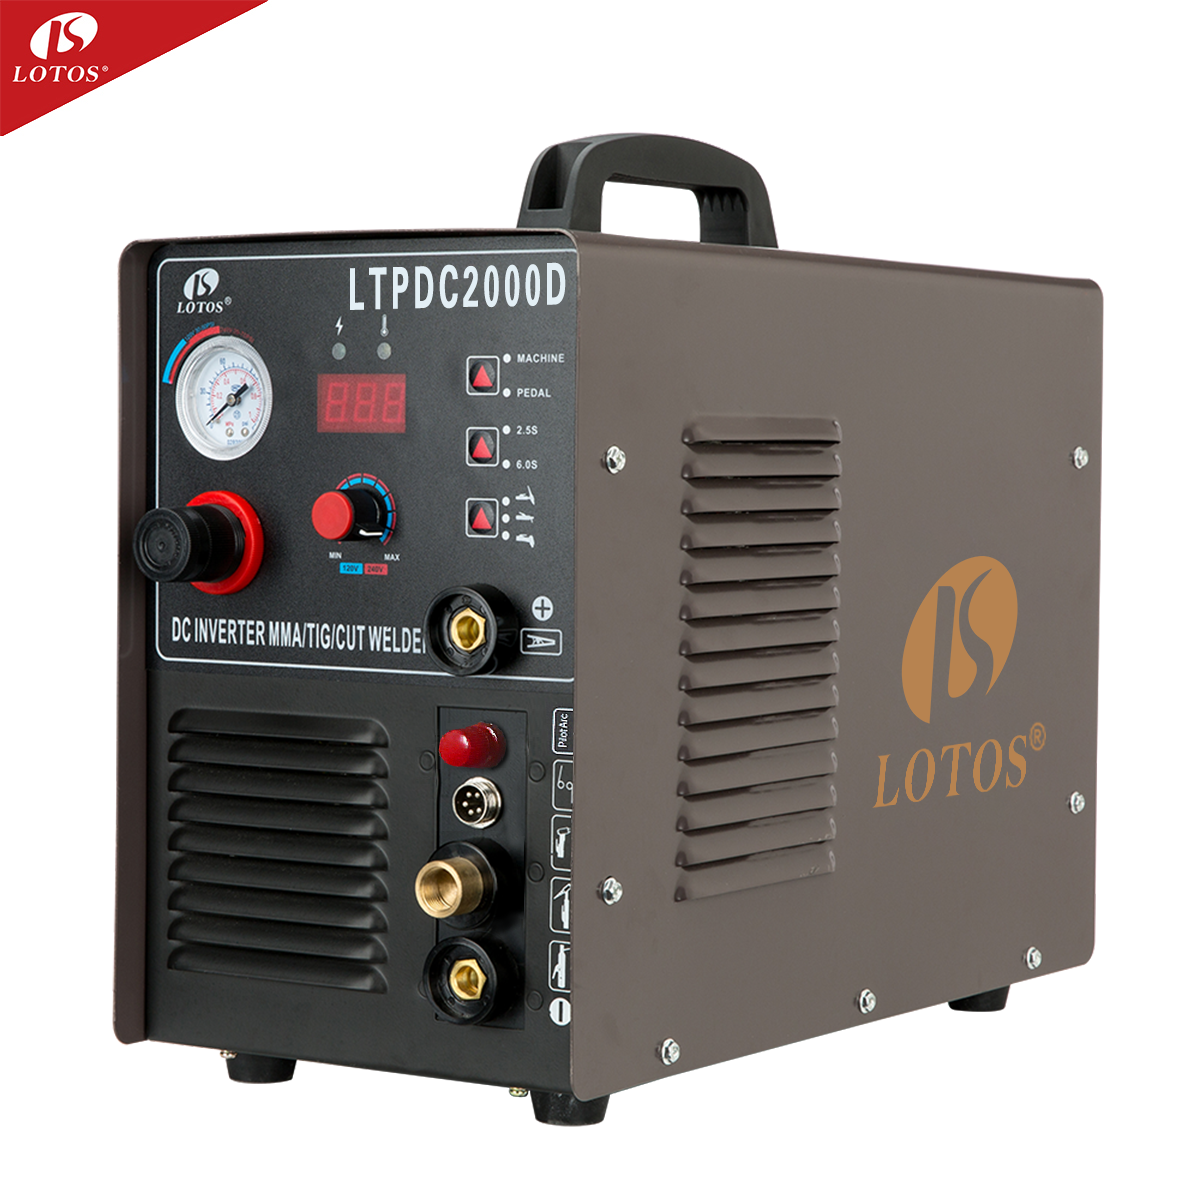 Lotos LTPDC2000D welder inverter 200a CUT MMA TIG 3 in1 inverter welding machine price for sale